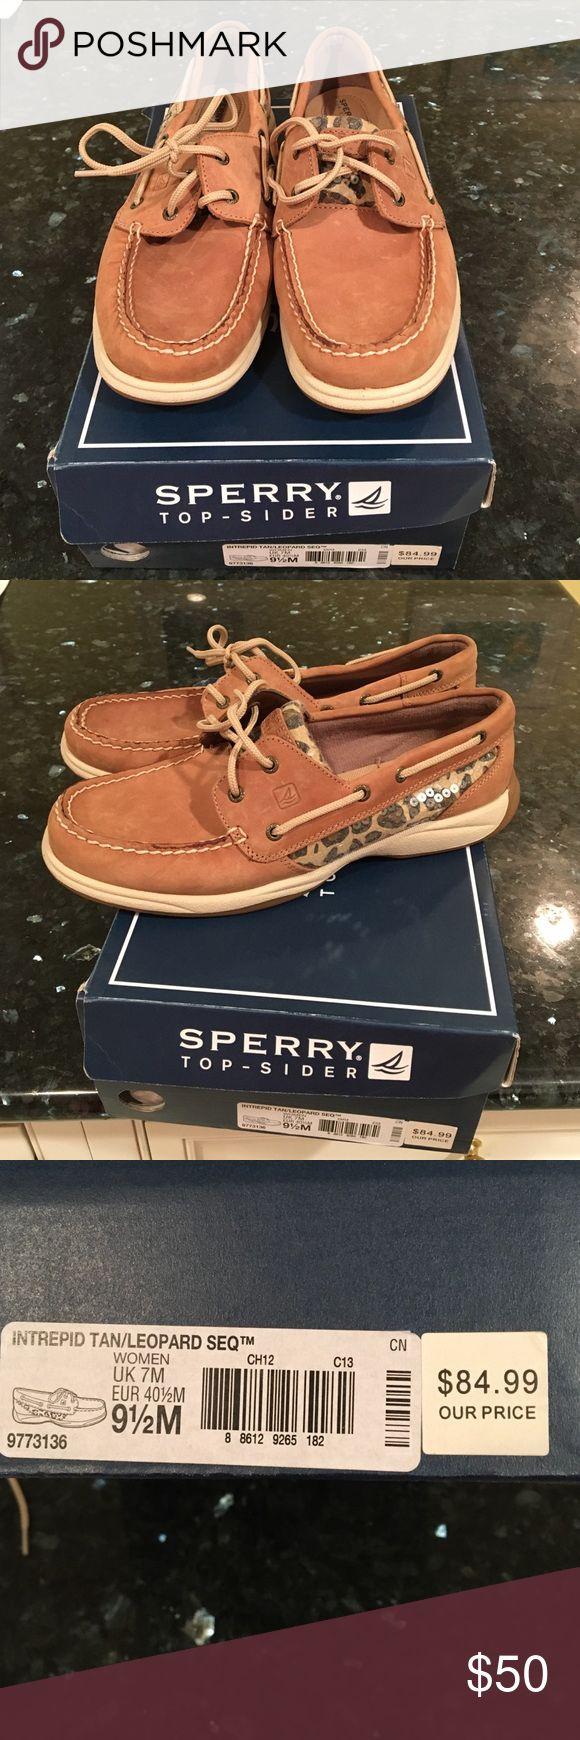 Spectrum Top Sider Tan Leopard sequin boat shoes Spectrum Top Sider Tan Leopard sequin boat shoes.  9.5.  Only worn 2x. Sperry Top-Sider Shoes Flats & Loafers